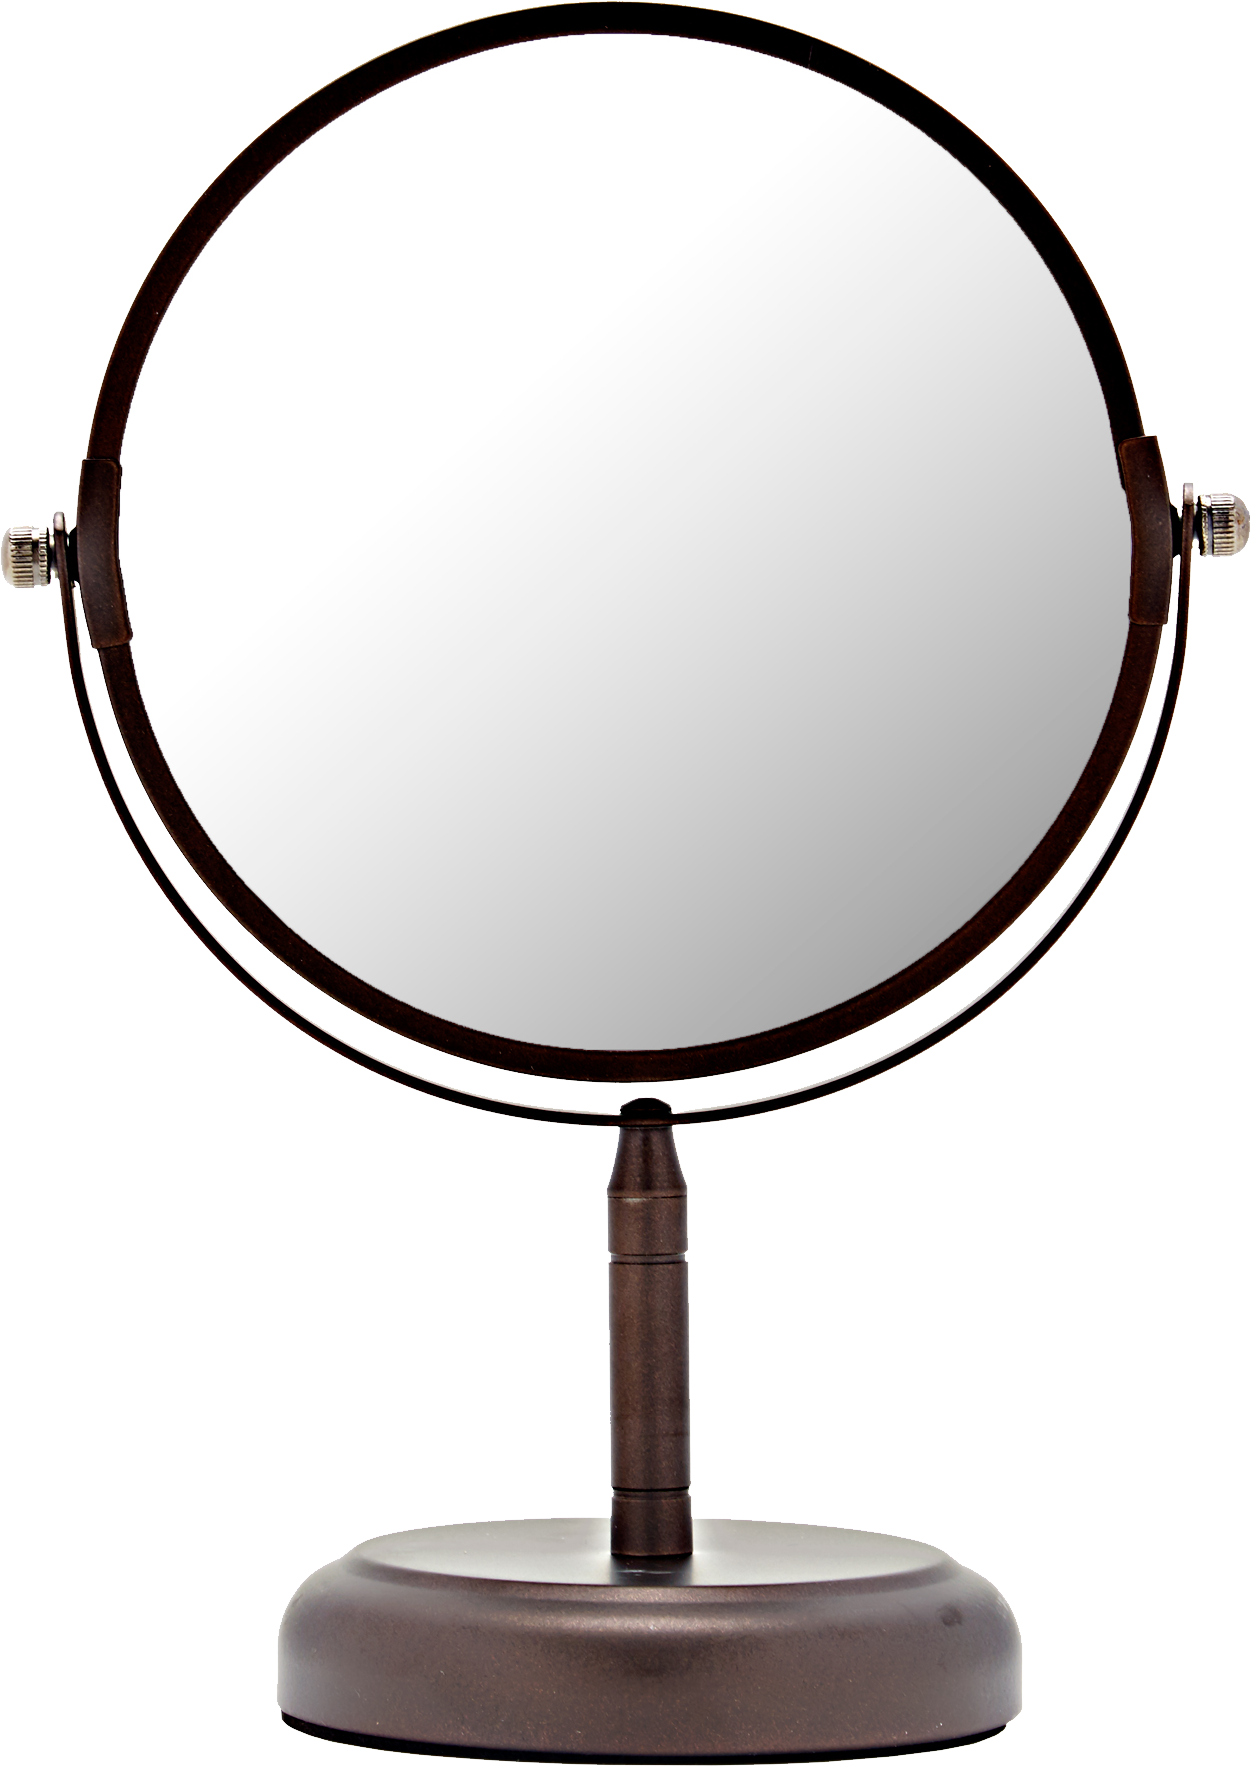 Png images free download. Comb clipart mirror